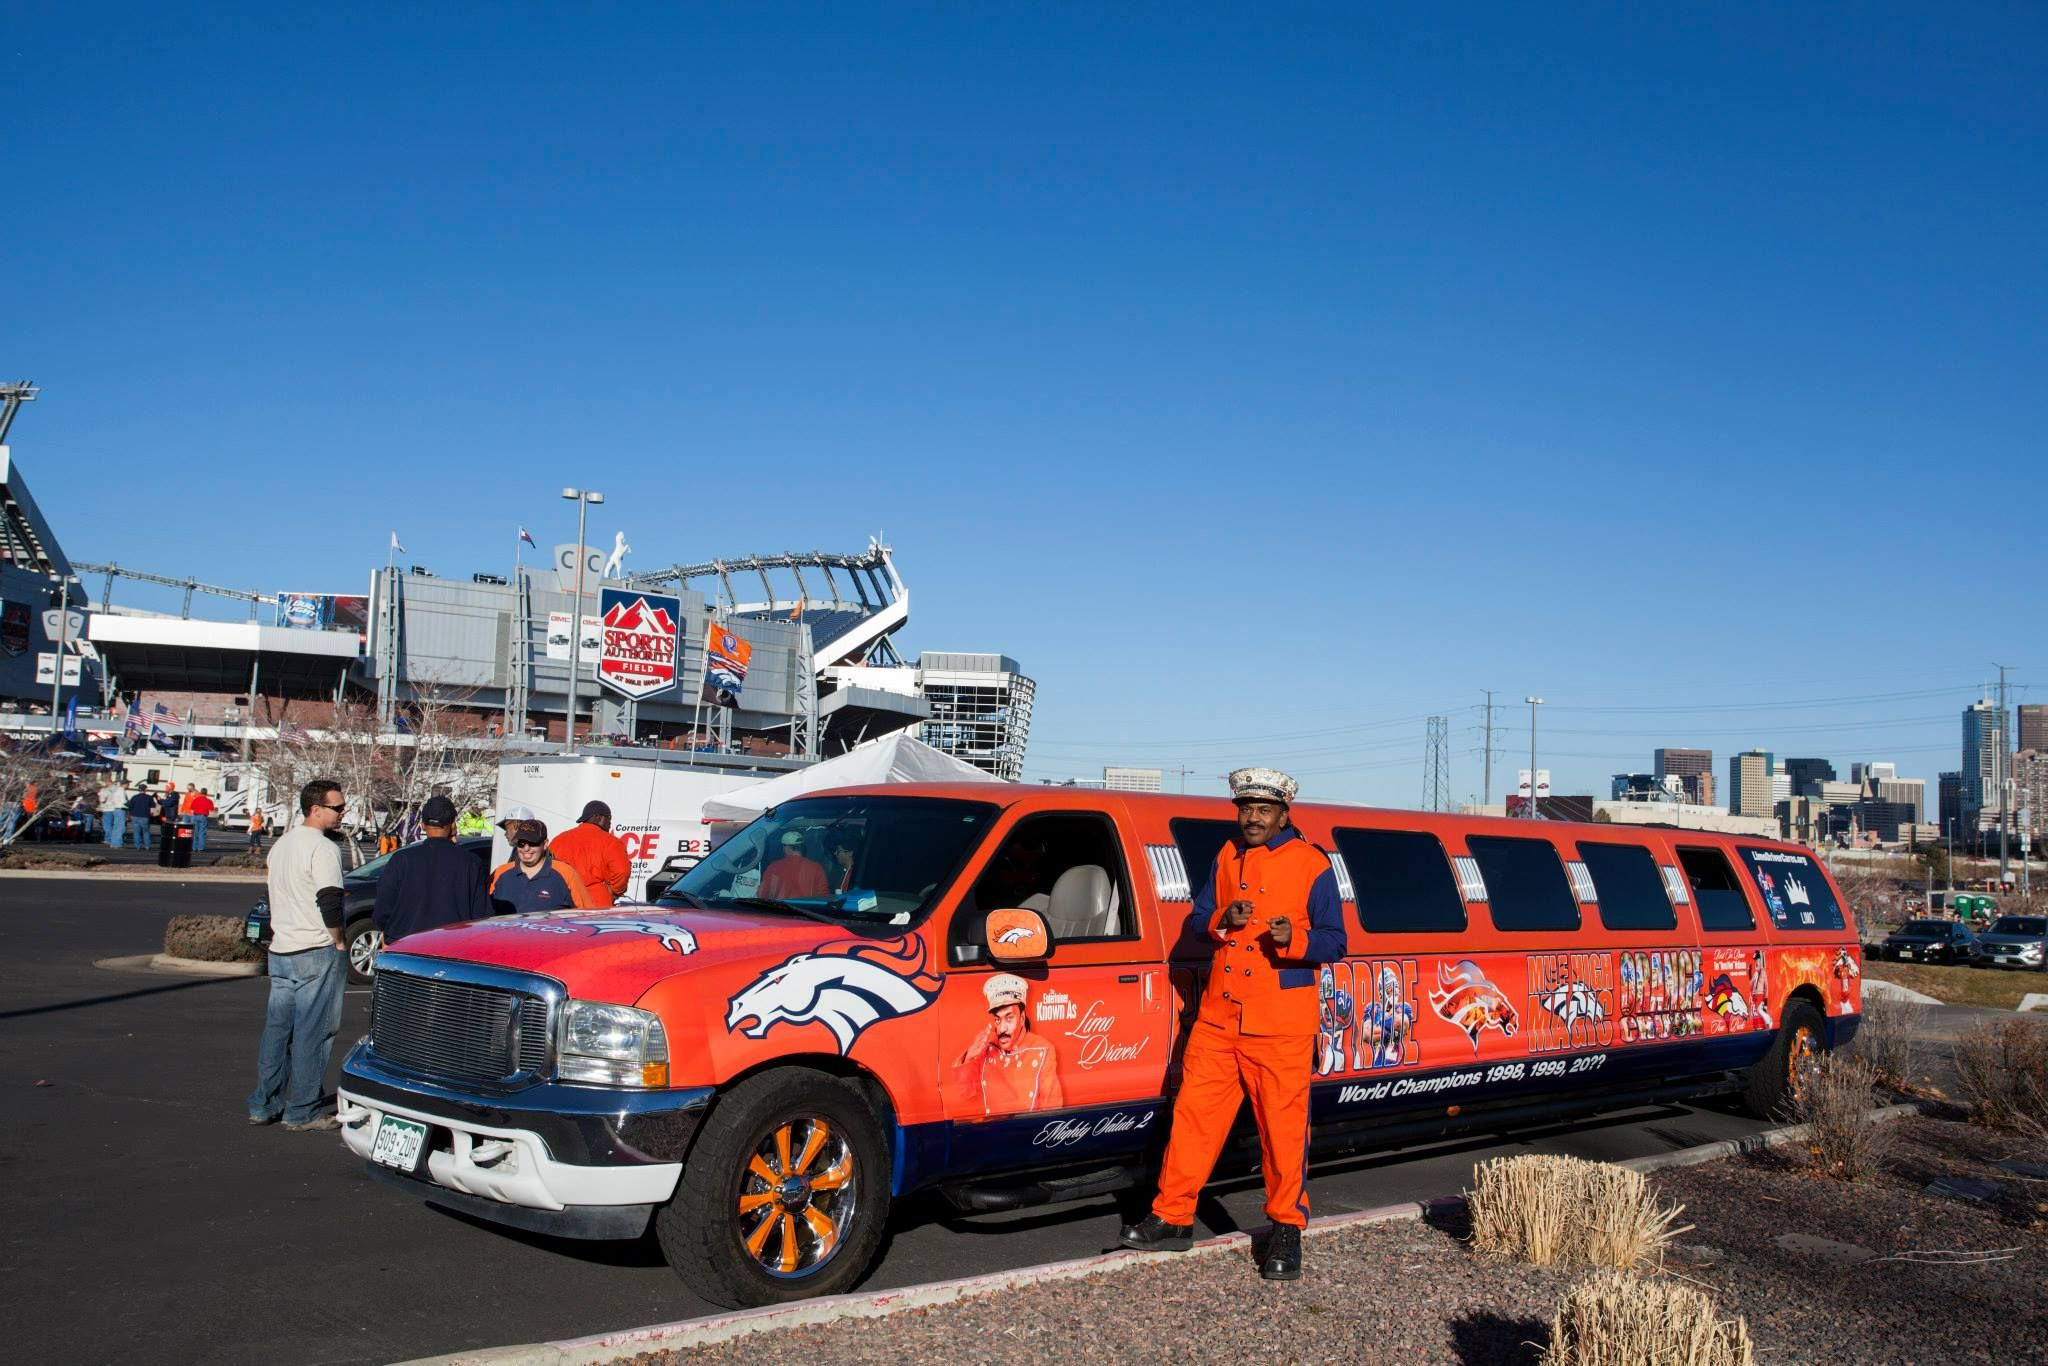 Go Car Denver: The Coolest Denver Broncos Vehicles You've Ever Seen